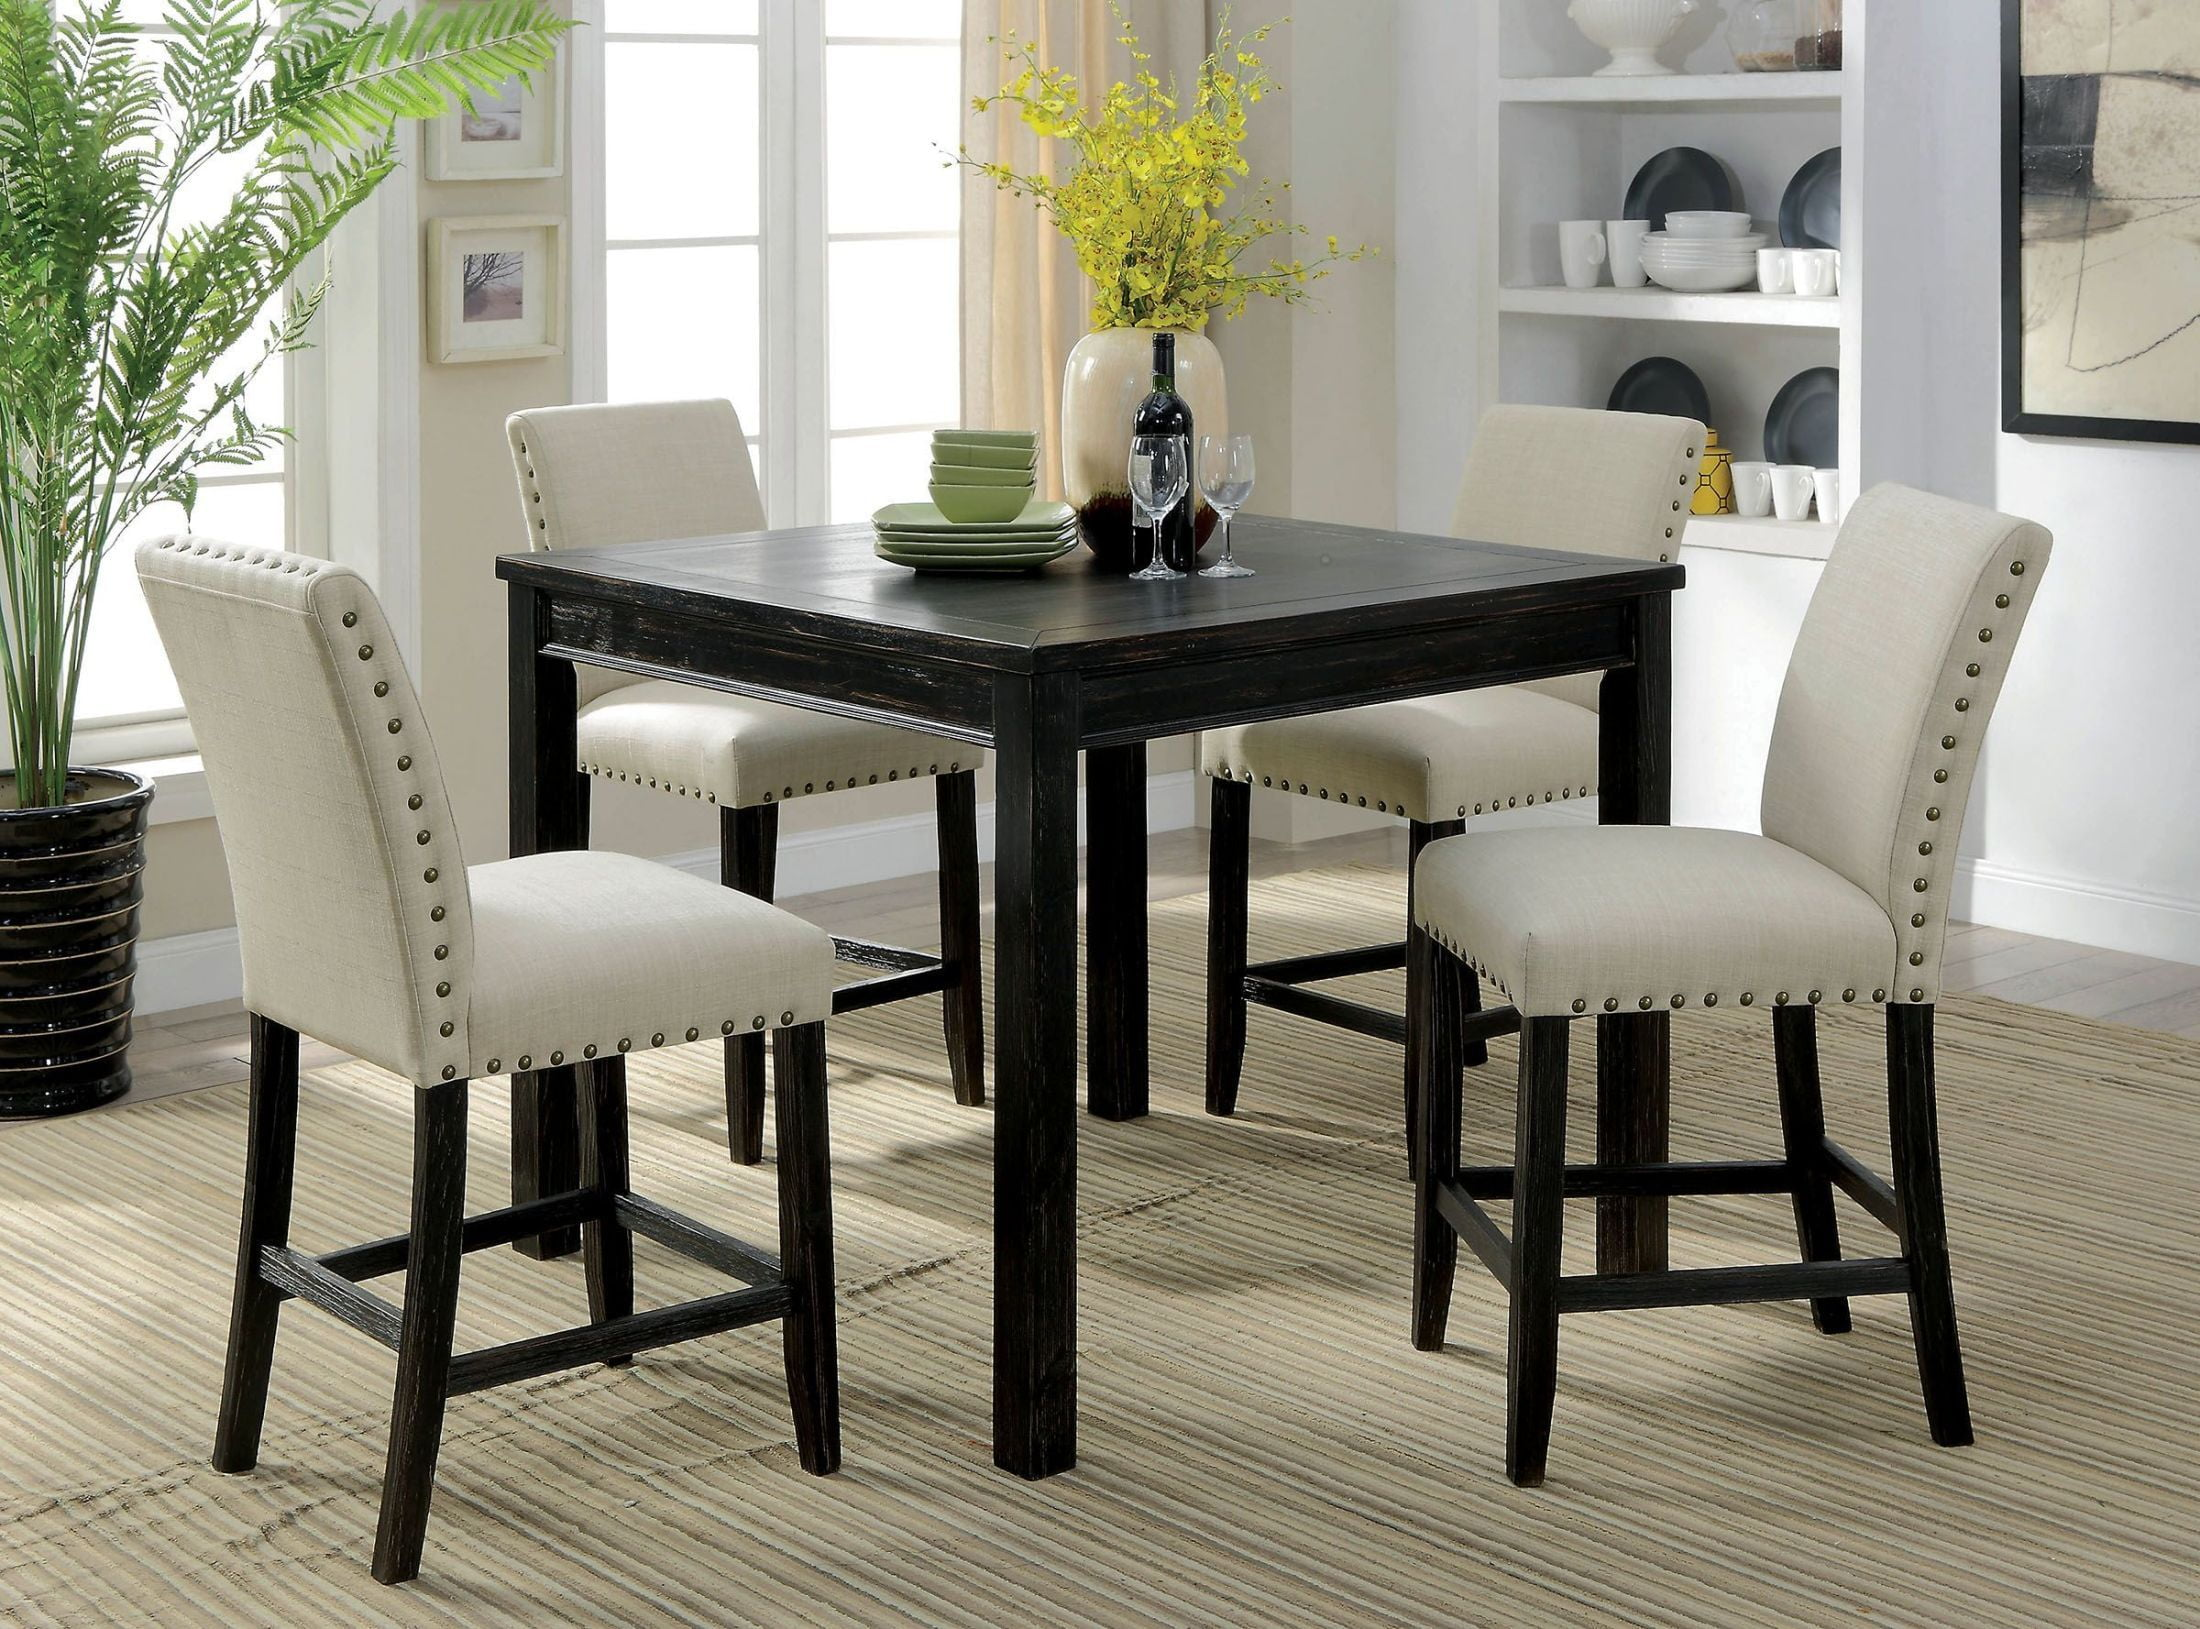 Dining Table Height Cm Furniture Of America Kristie Antique Black Counter Height